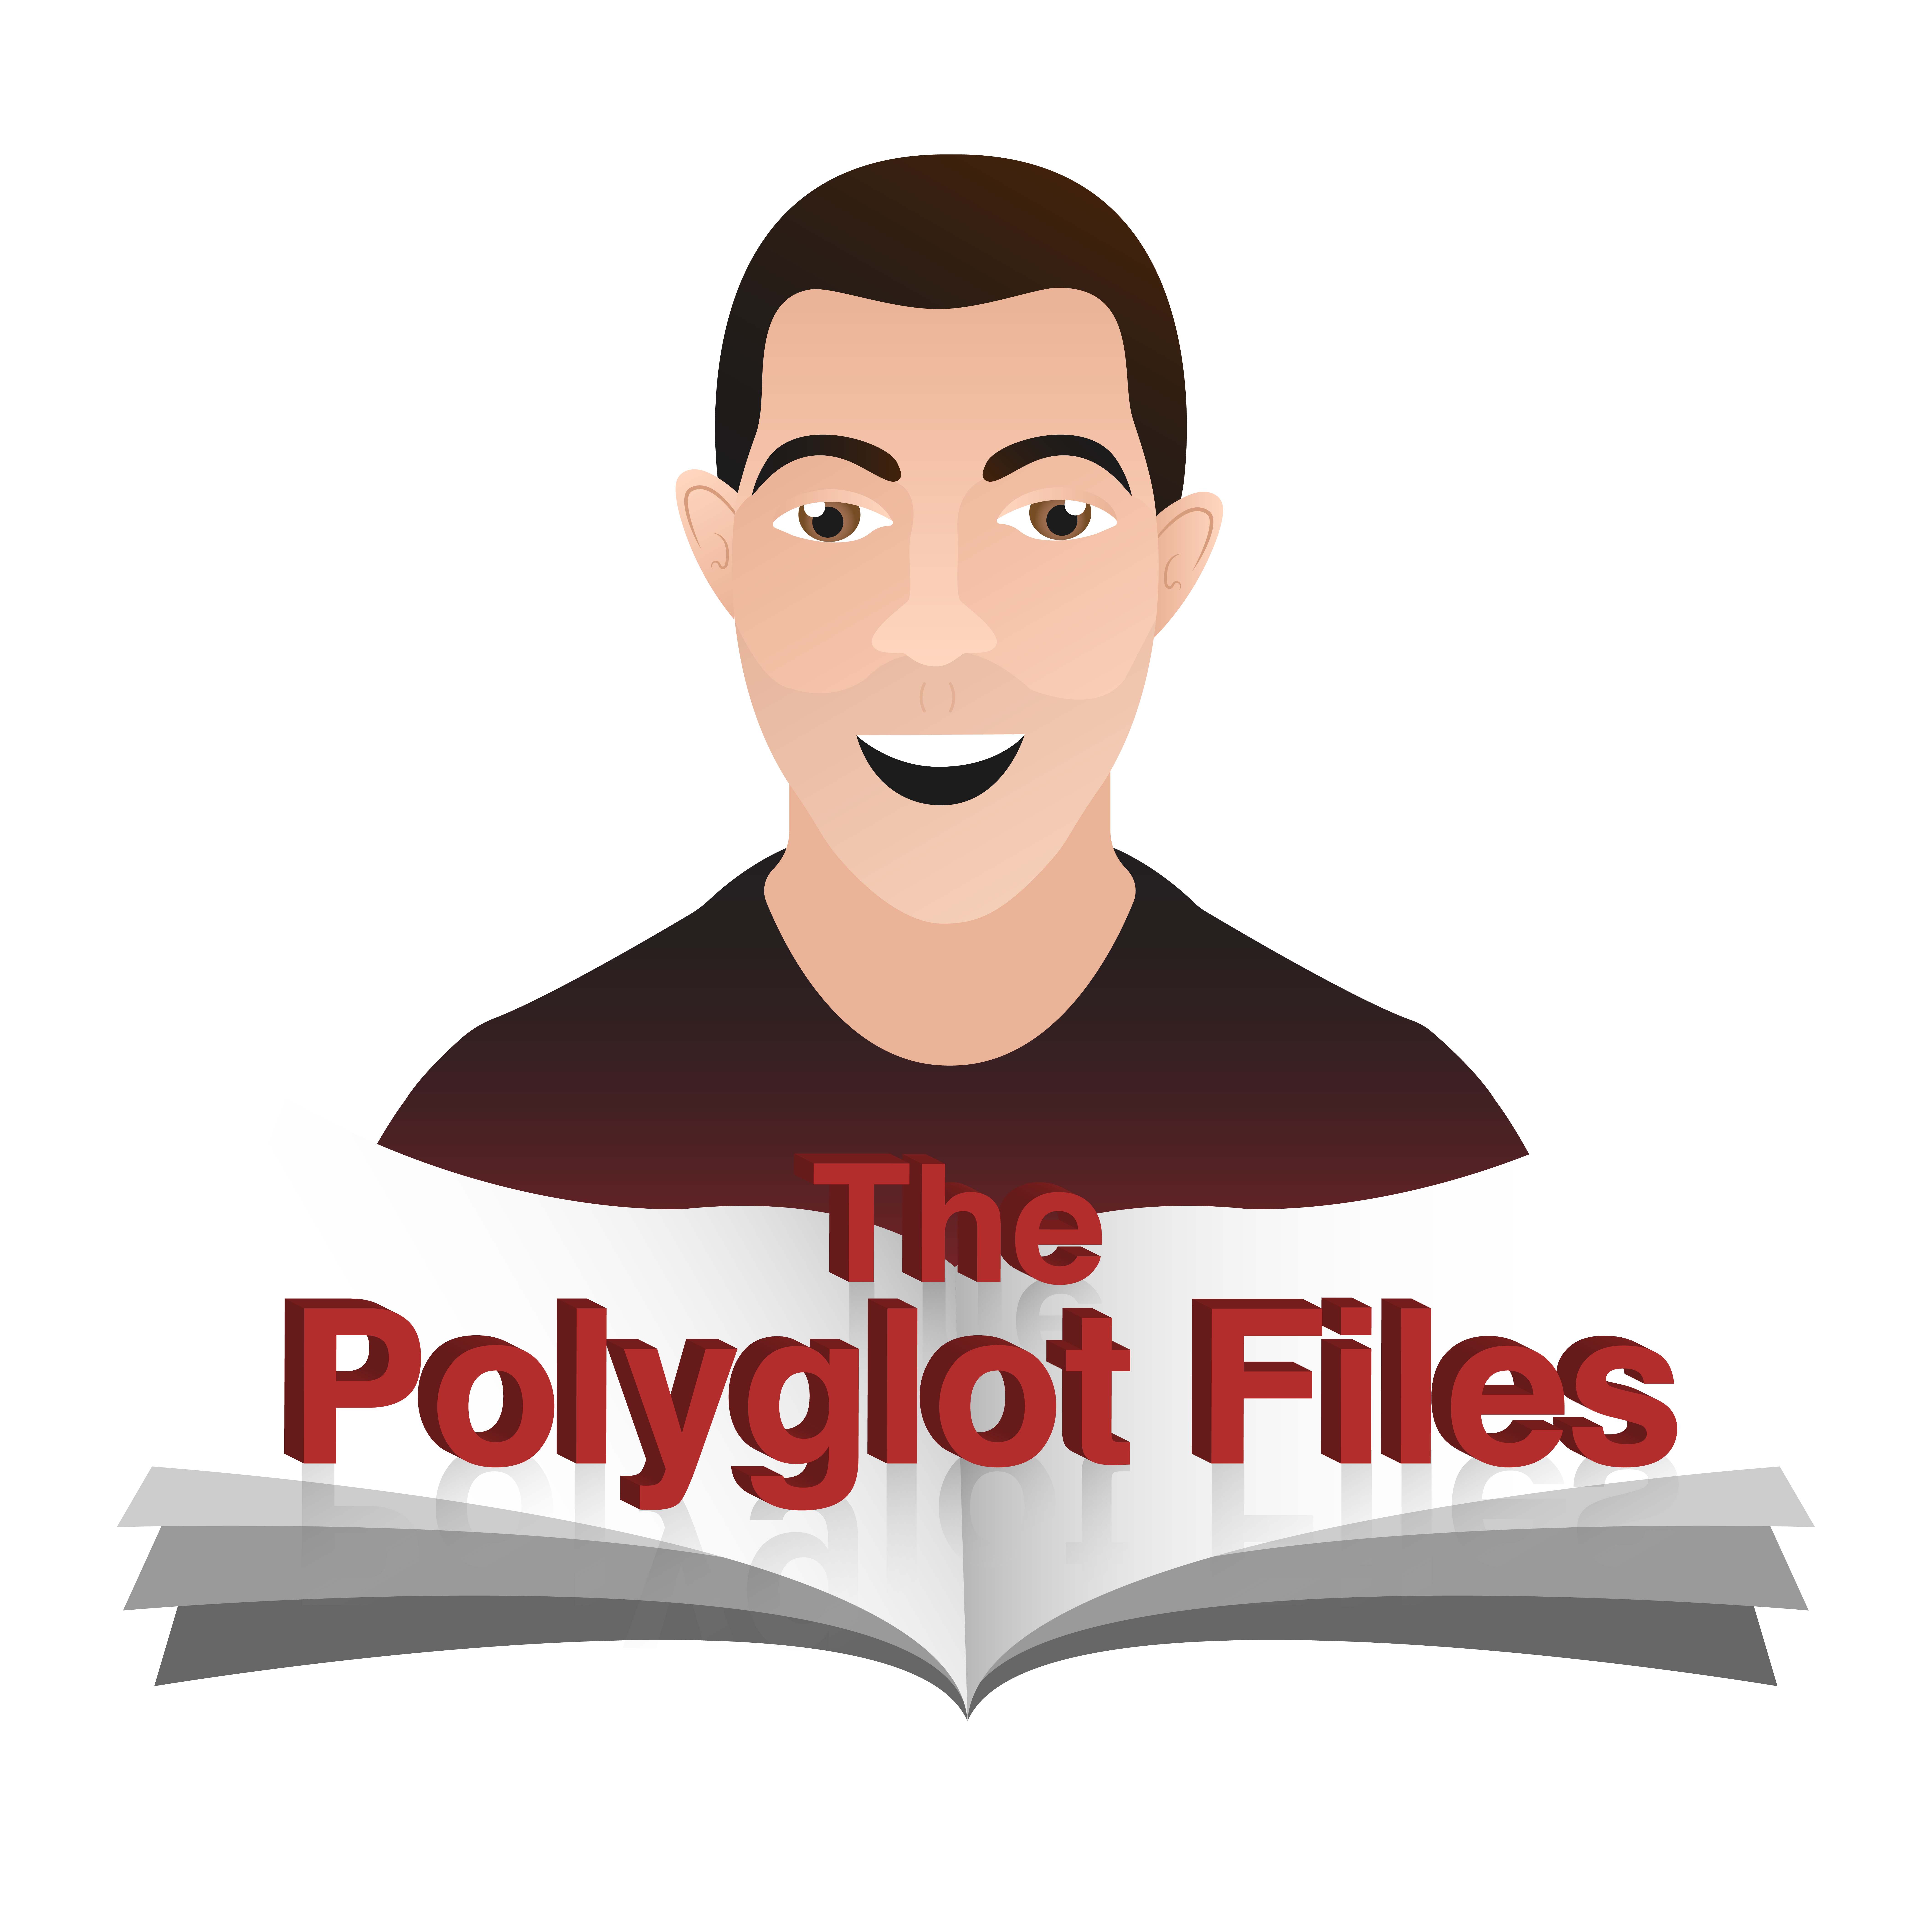 The Polyglot Files